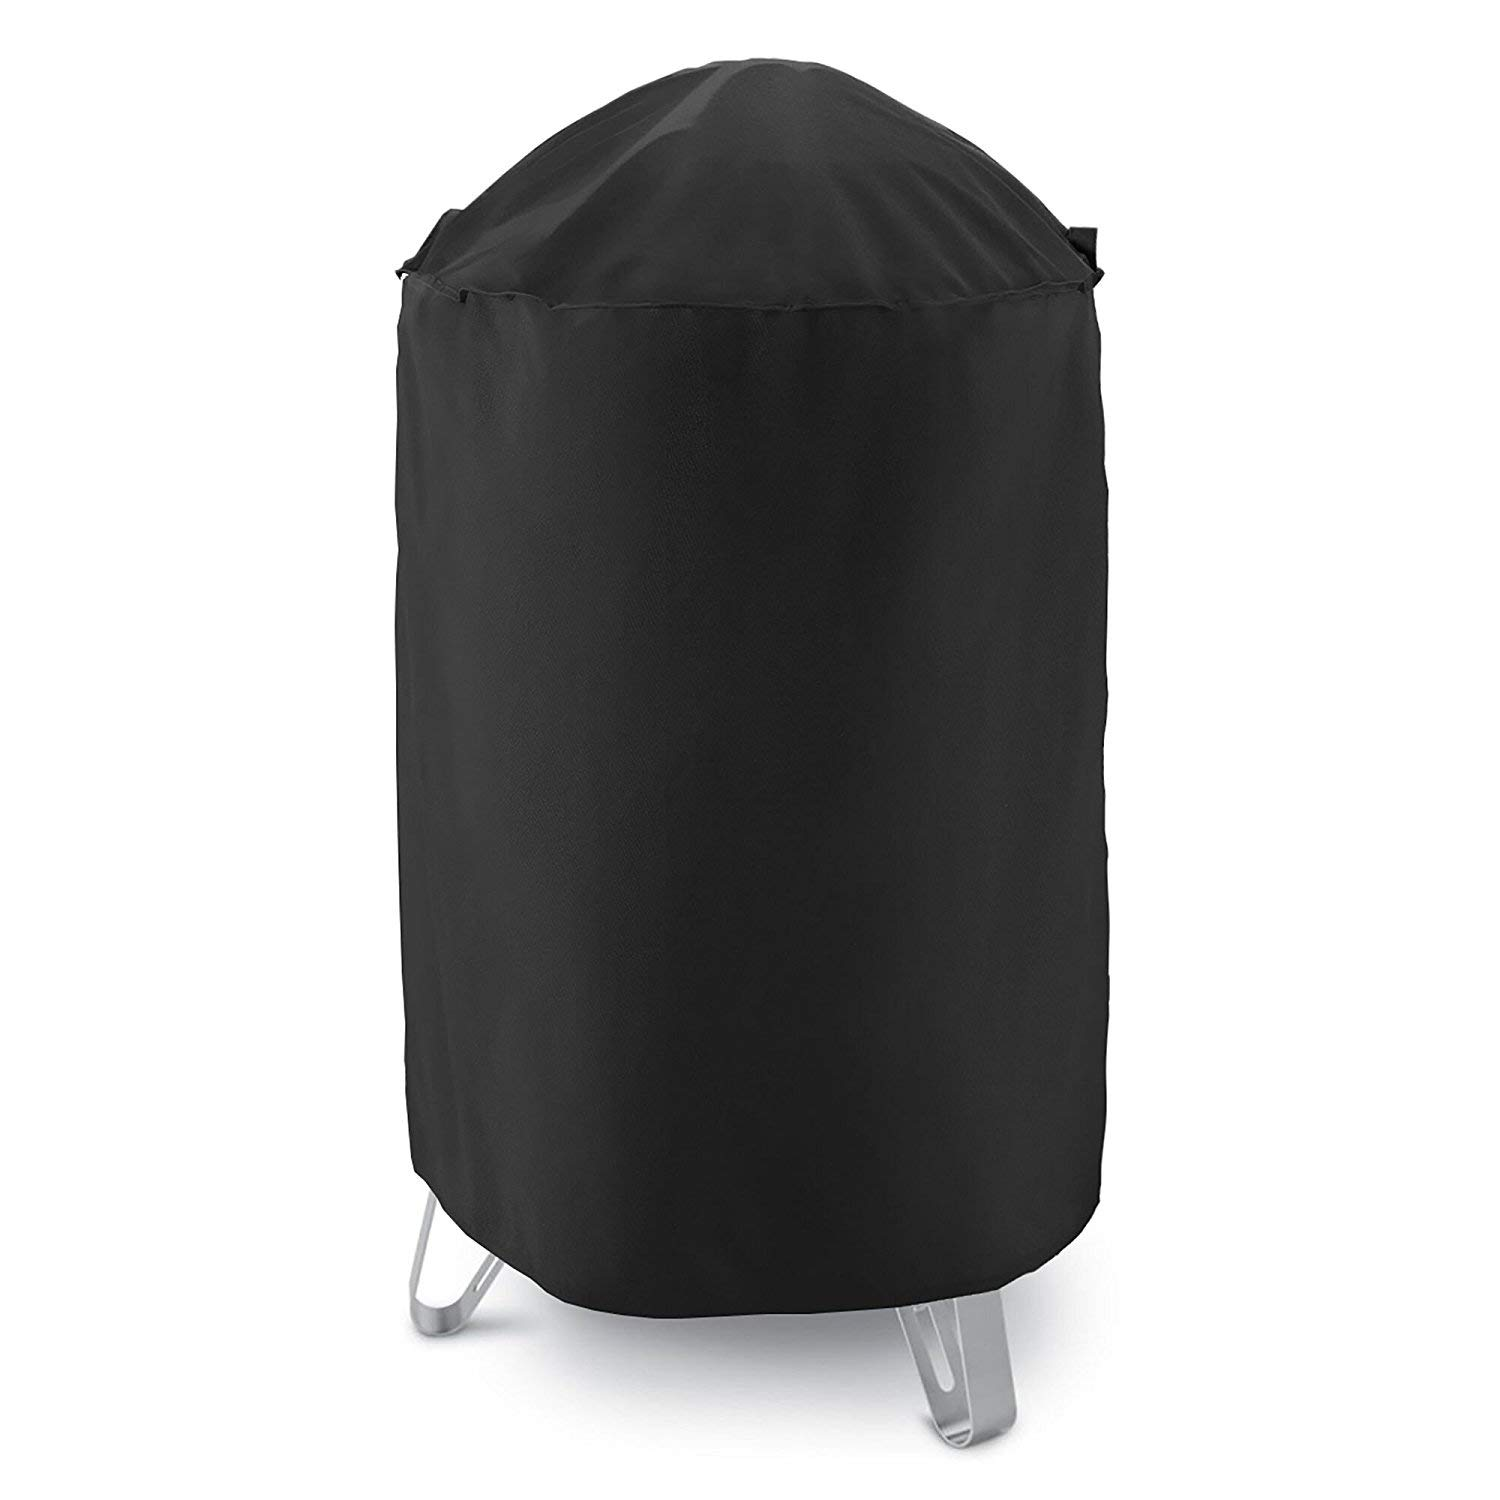 """AKEfit Dome Smoker Cover, 30"""" Dia x 36"""" H,Heavy Duty Waterproof Barrel Cover, Vertical Water Smoker Cover, Round Kettle Grill Covers, All Weather Protection for Weber, Char-Broil and More"""